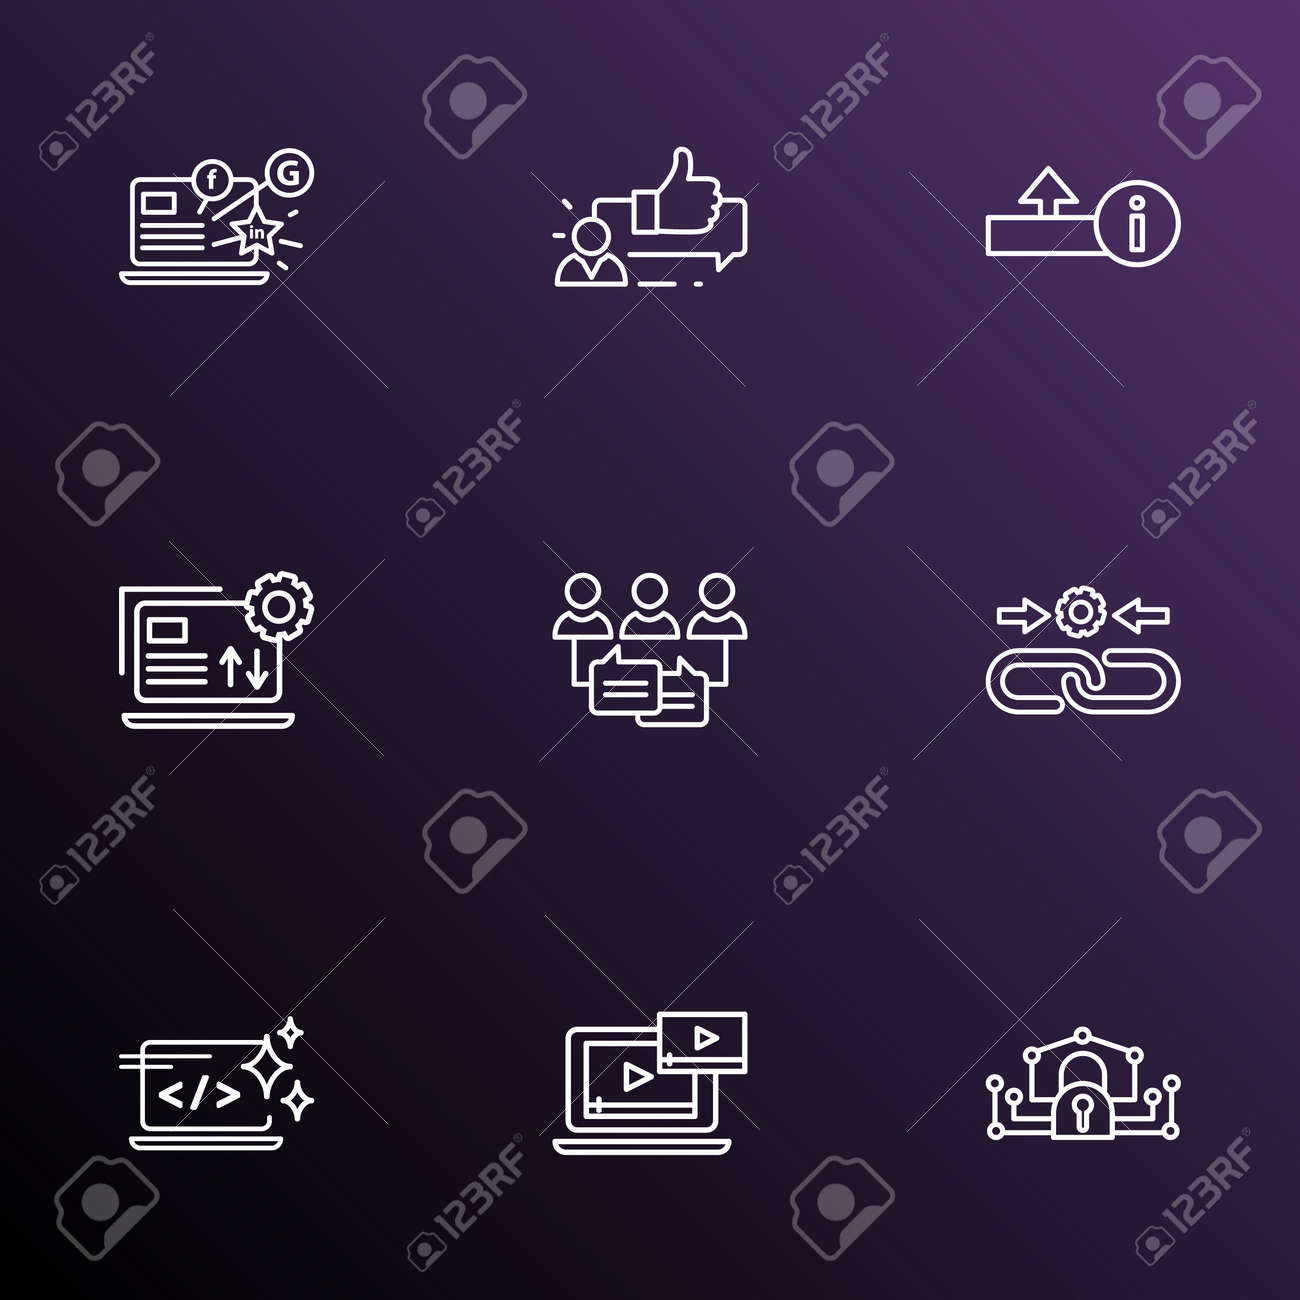 Search icons line style set with upload, audience engagement,